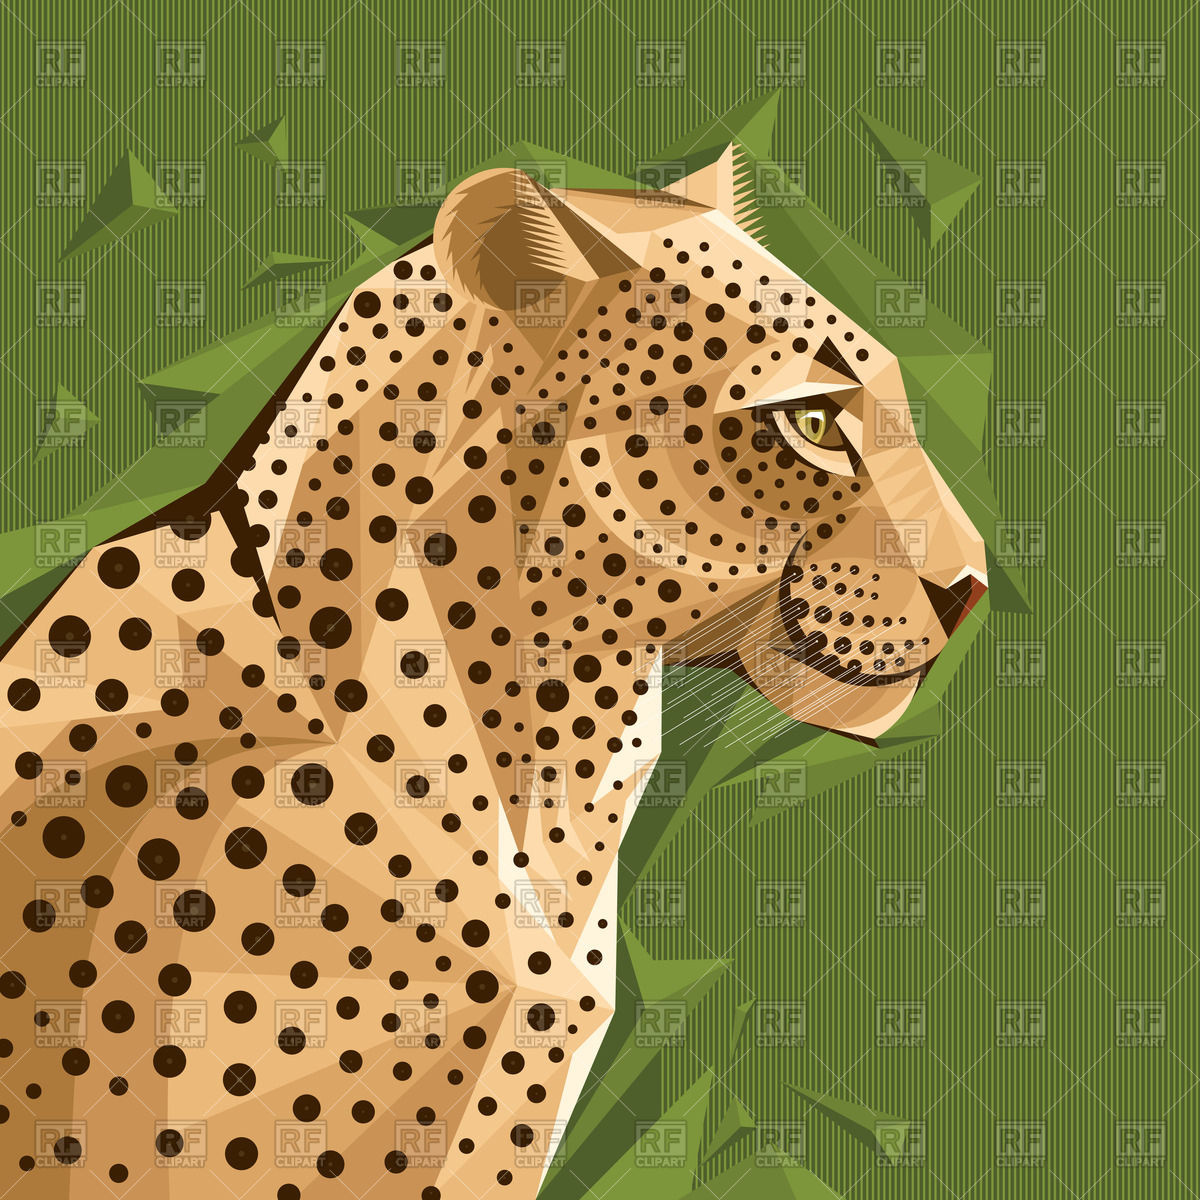 Portrait of leopard on abstract green background Vector Image.